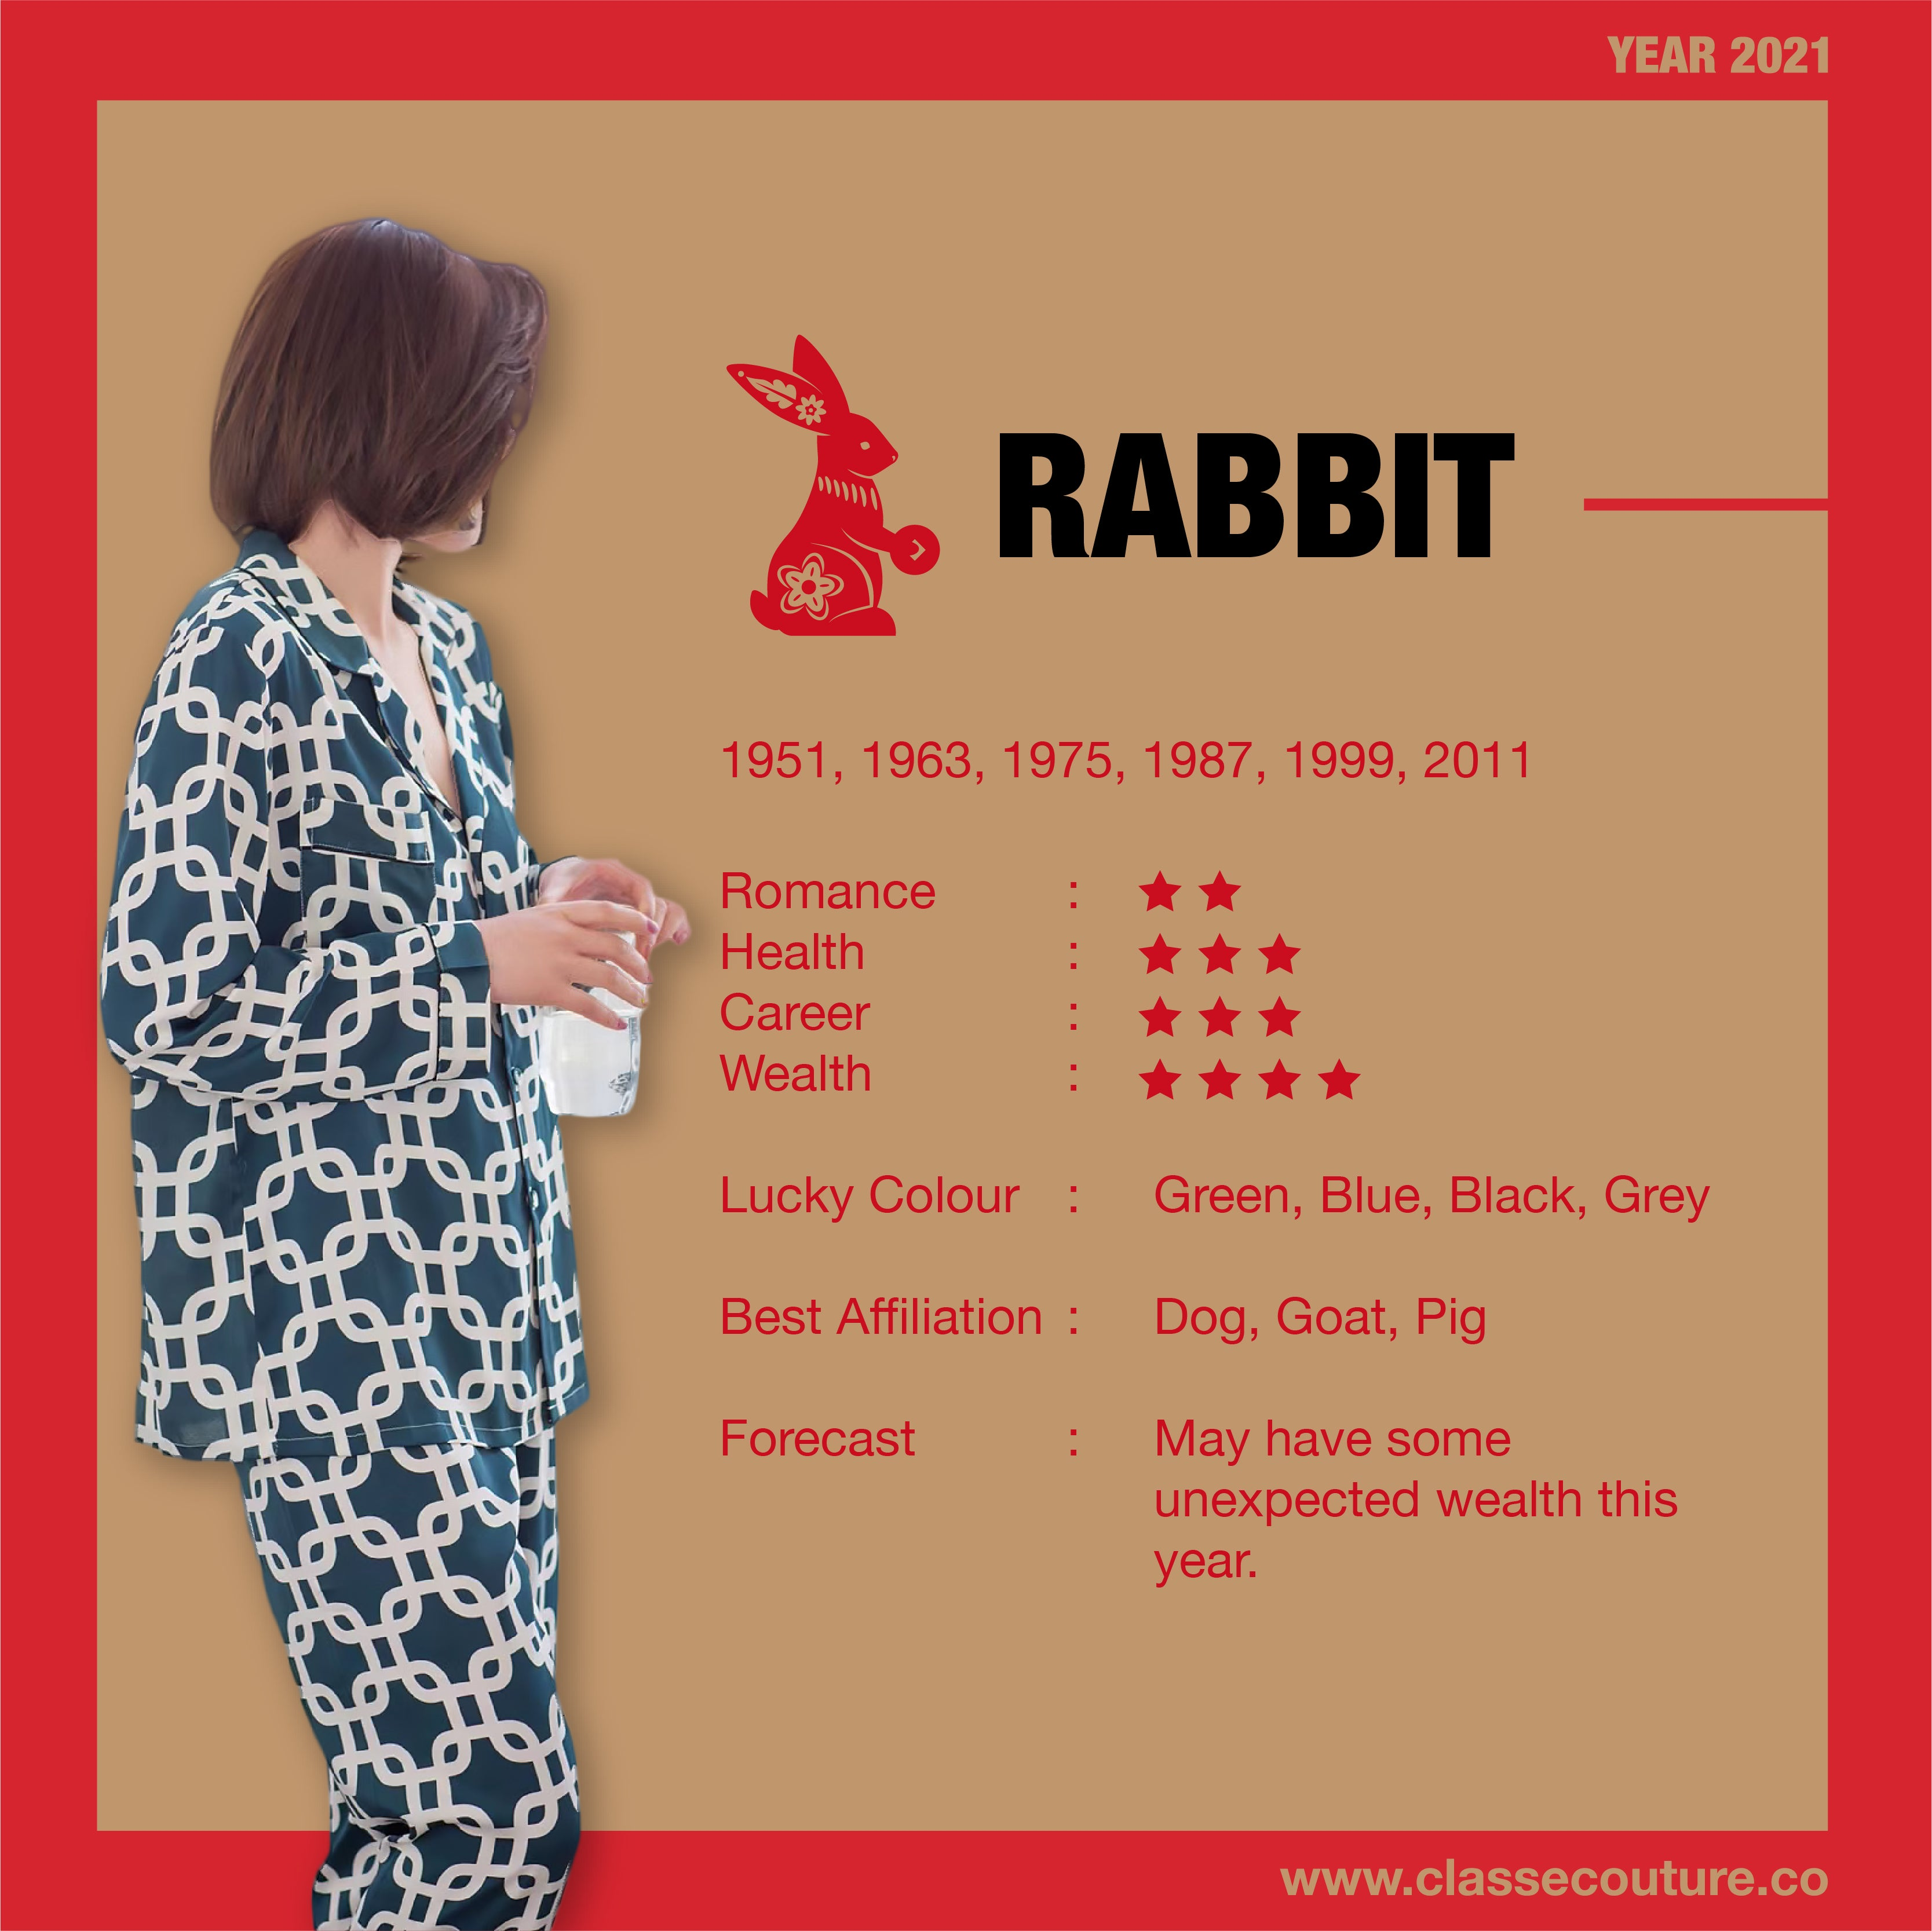 Chinese Horoscope year 2021 - year of the Ox. Yearly Feng Shui forecast and summarises about Rabbit Horoscope in year 2021!